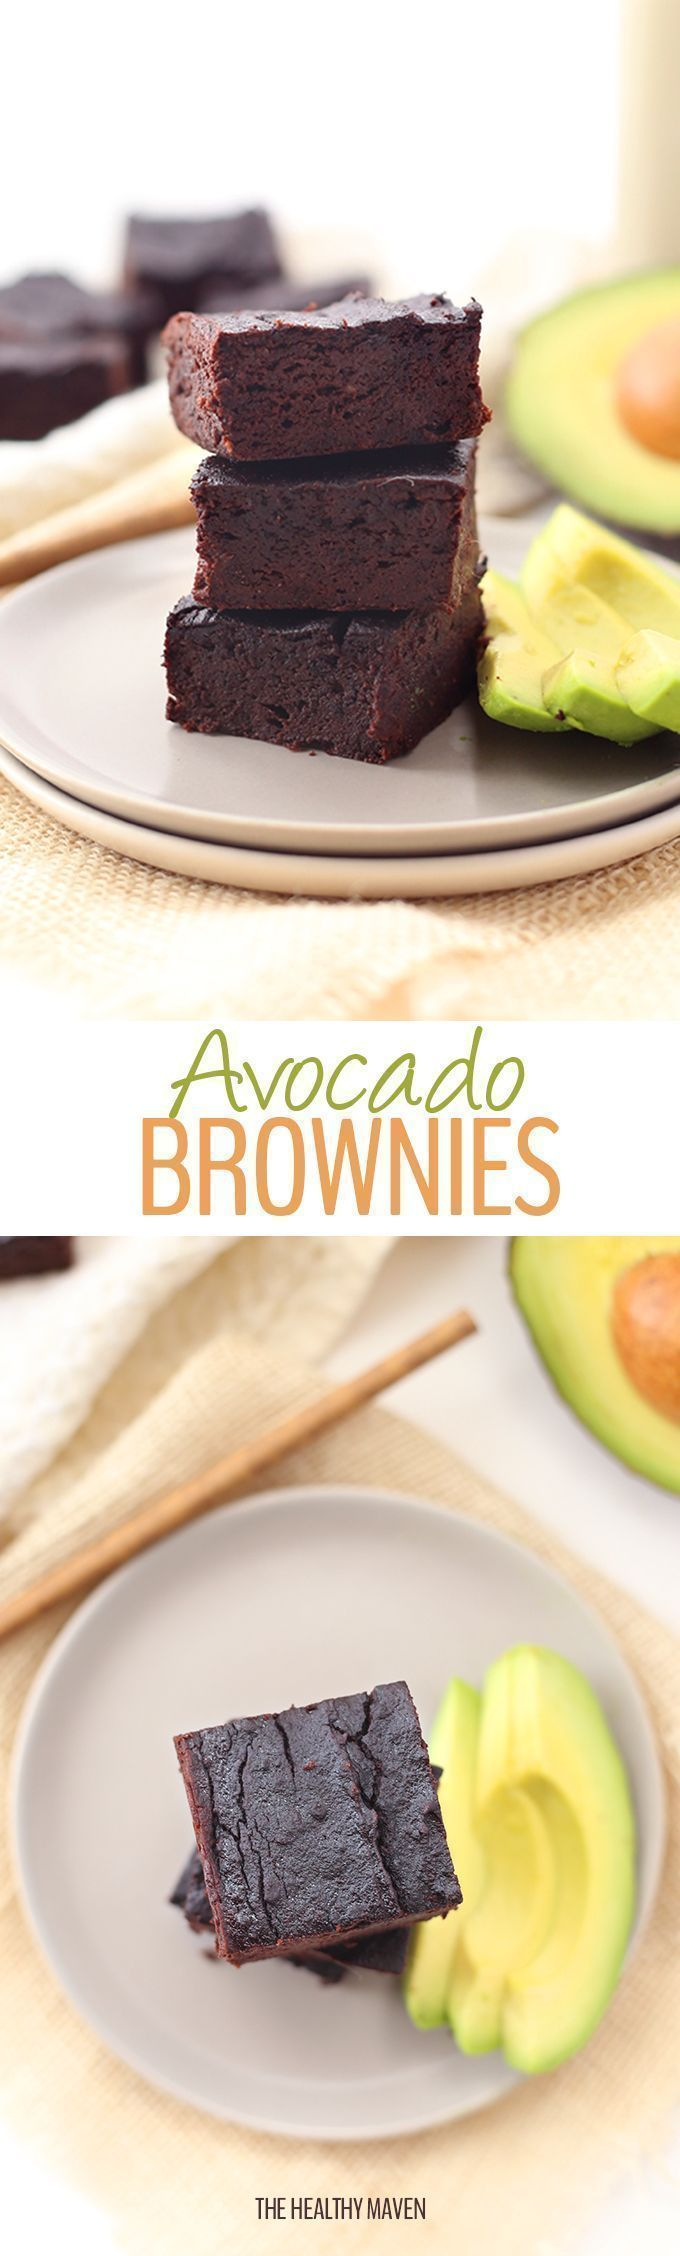 Recipe // Avocado + Eggs + Applesauce + Maple Syrup + Baking Soda + Cocoa Powder + Coconut Flour + Sea Salt + Vanilla Extract